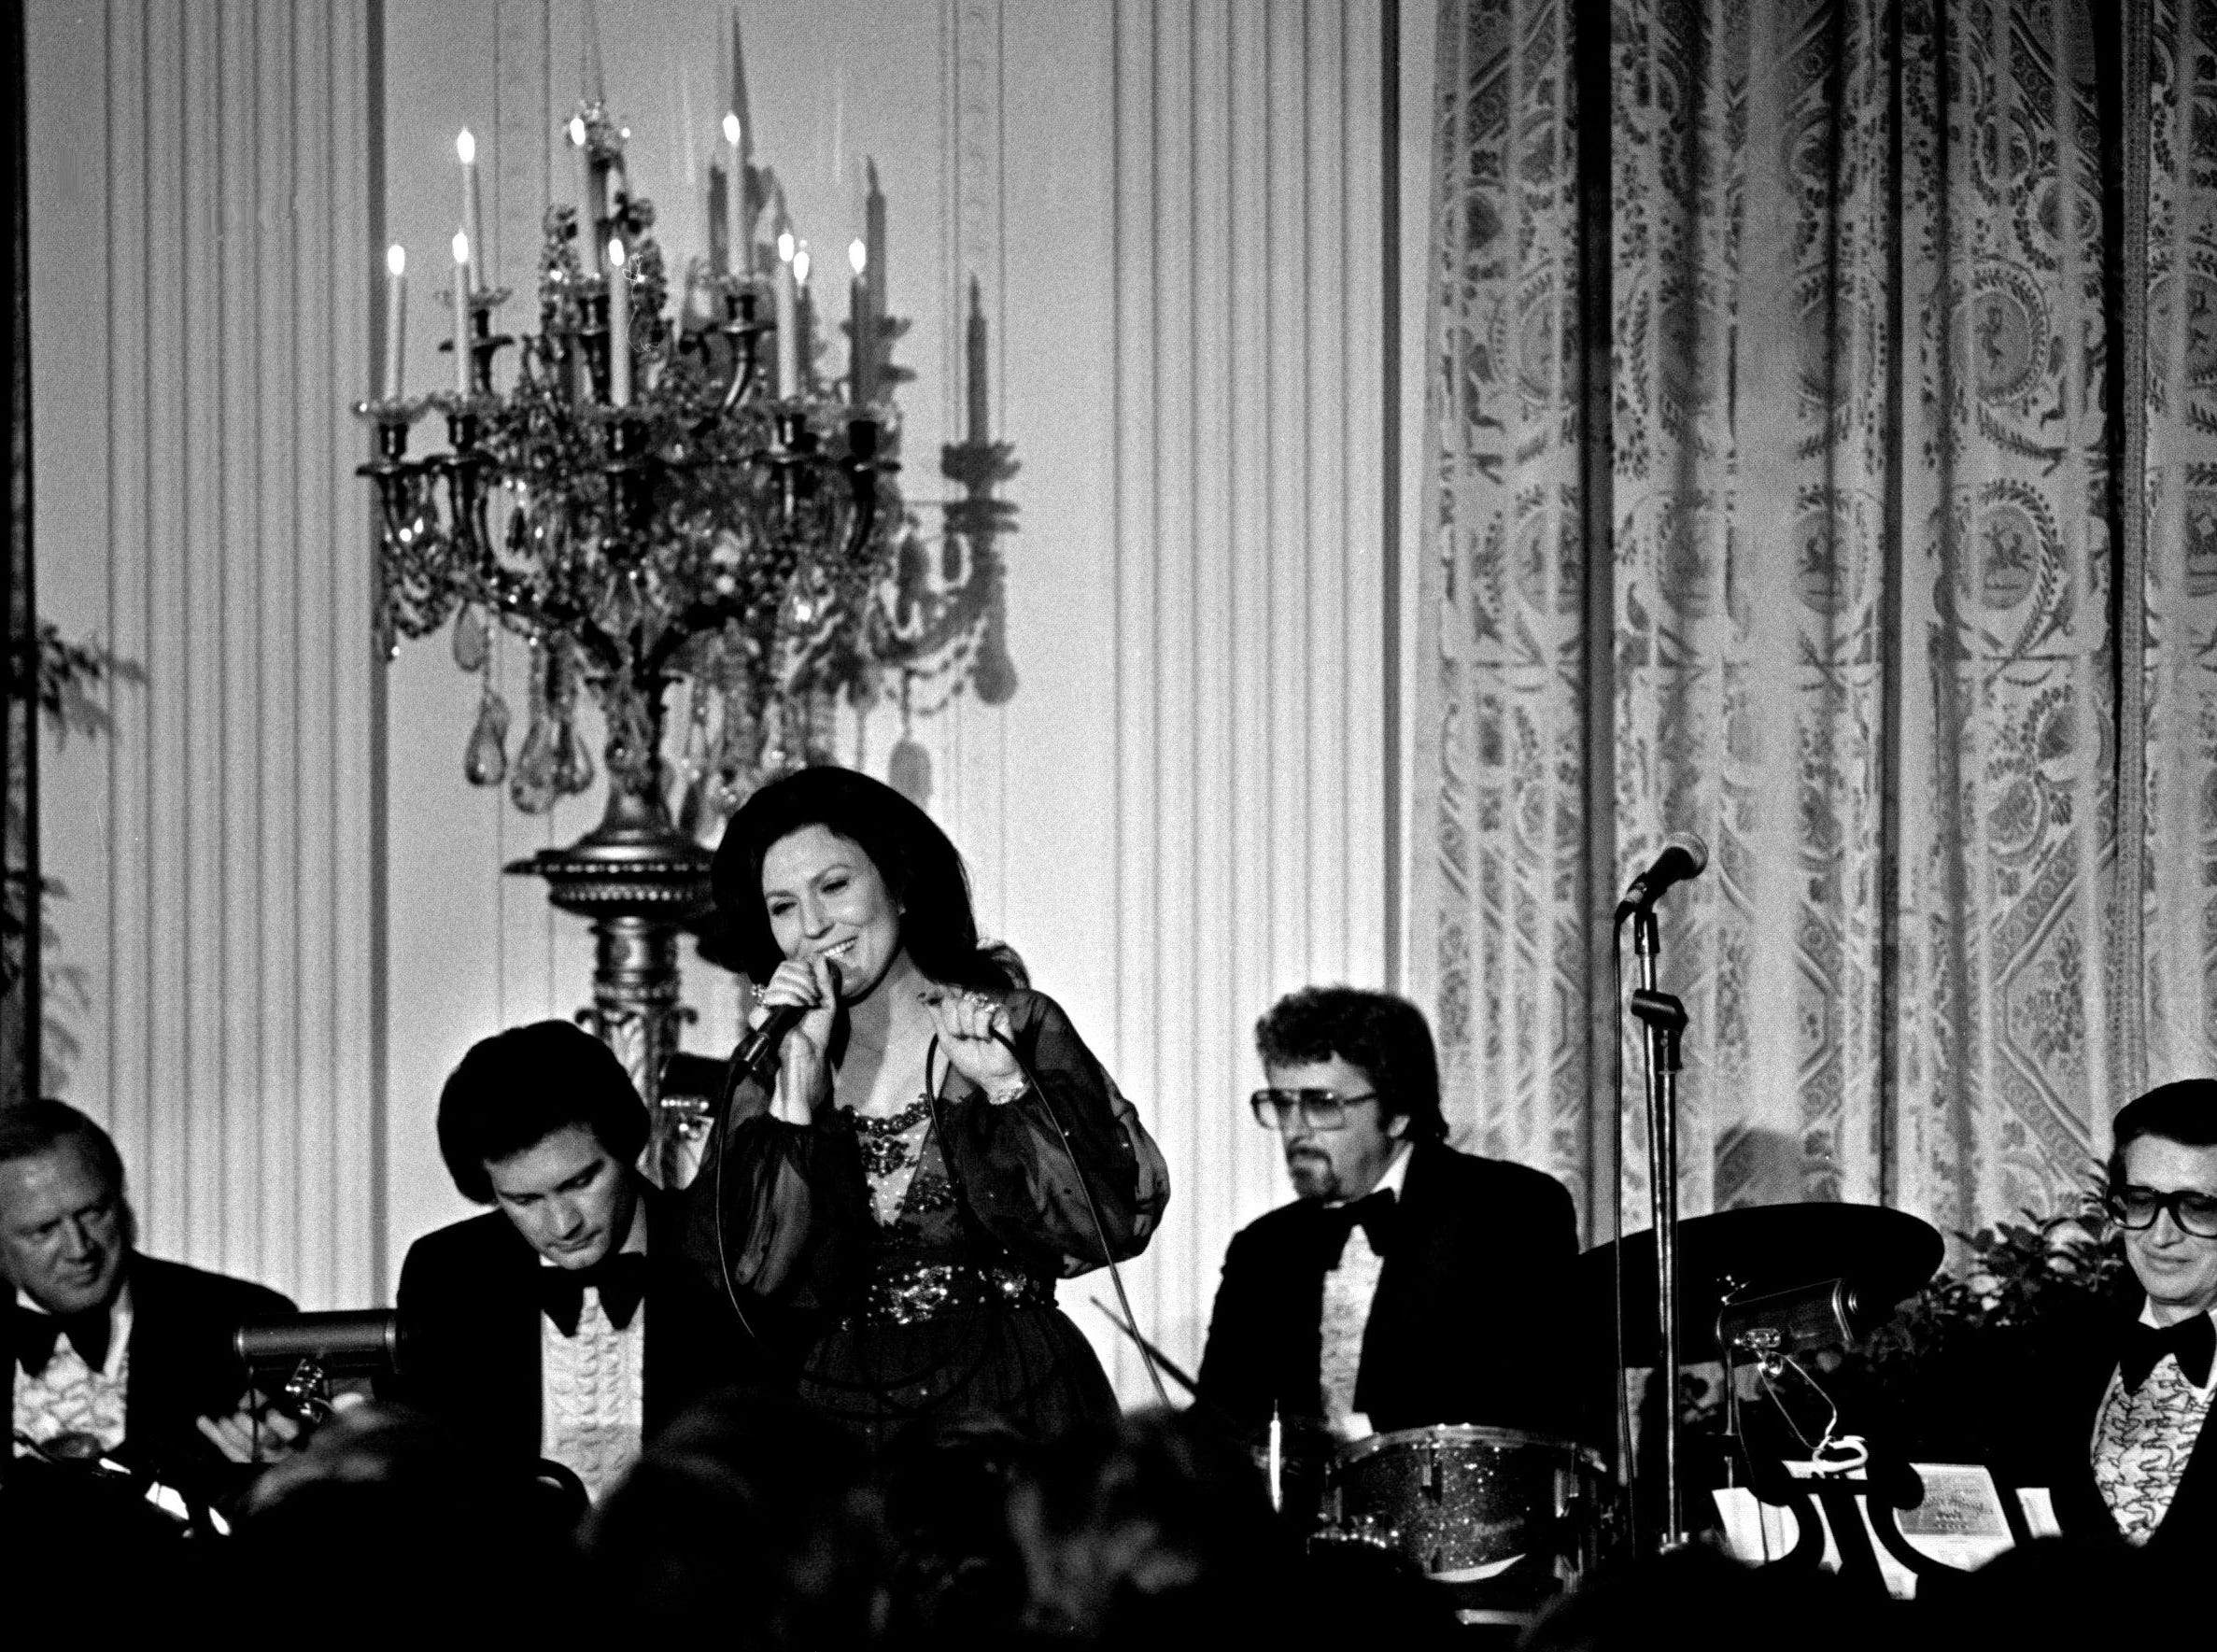 Loretta Lynn, center, is performing with a group of Nashville studio musicians in the East Room of the White House during country music night in Washington, D.C. April 17, 1978. More than 200 guests attended a gala reception give by President and Mrs. Jimmy Carter honoring the CMA.